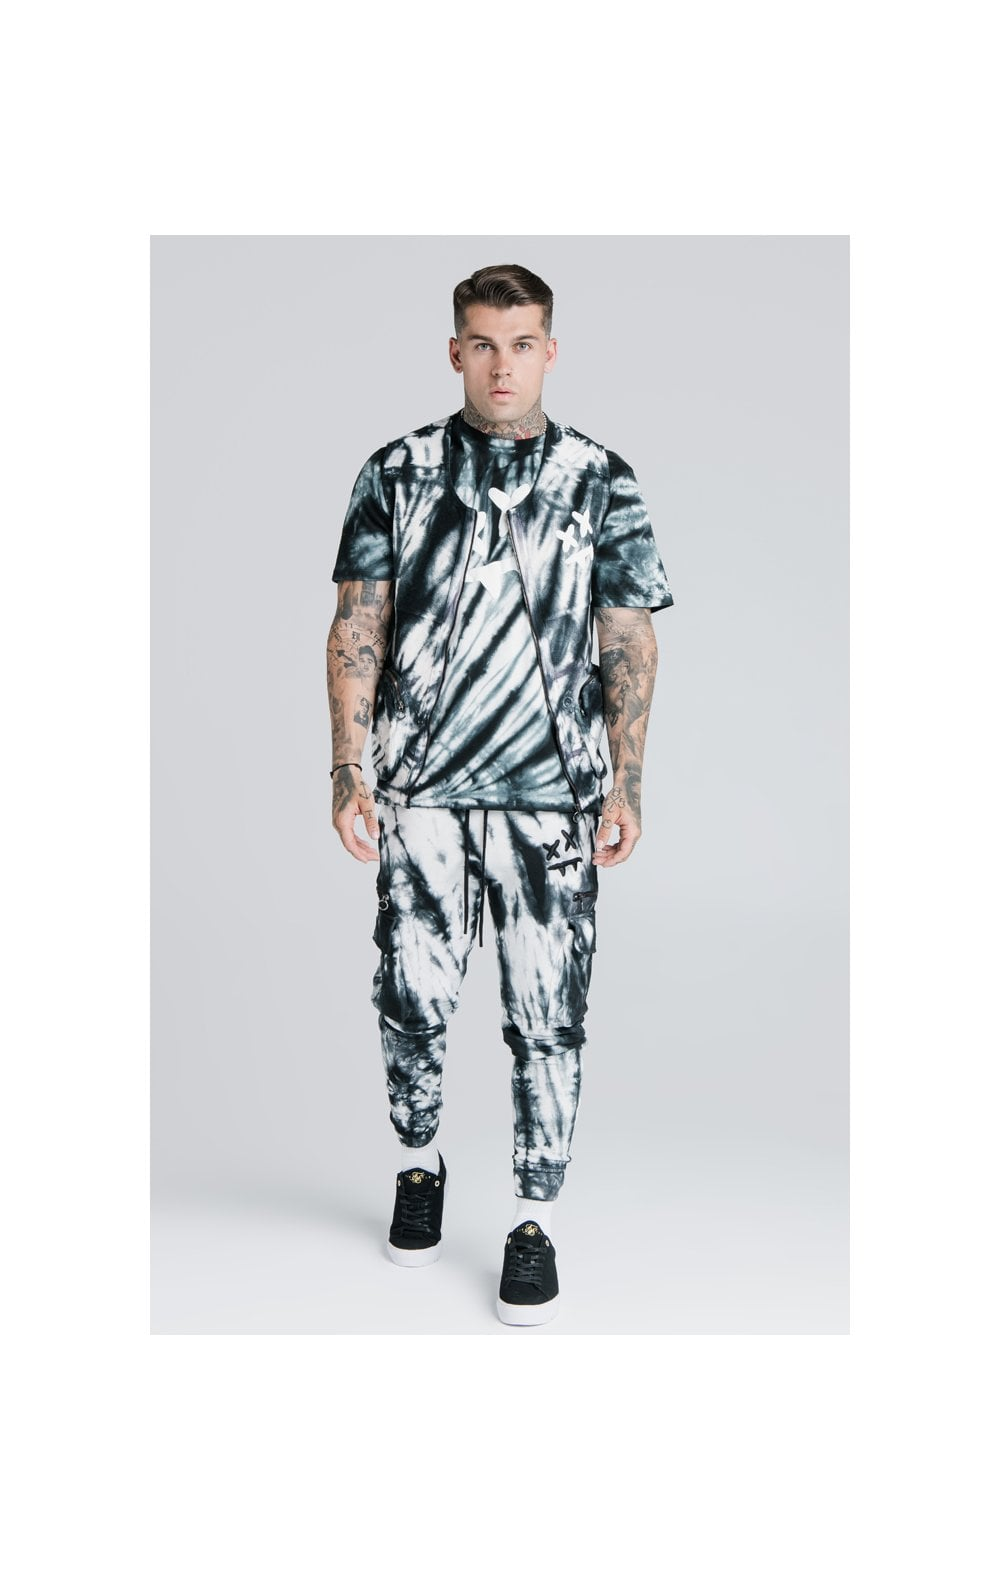 Load image into Gallery viewer, SikSilk X Steve Aoki Utility Vest - Black & White Ink Tie Dye (2)